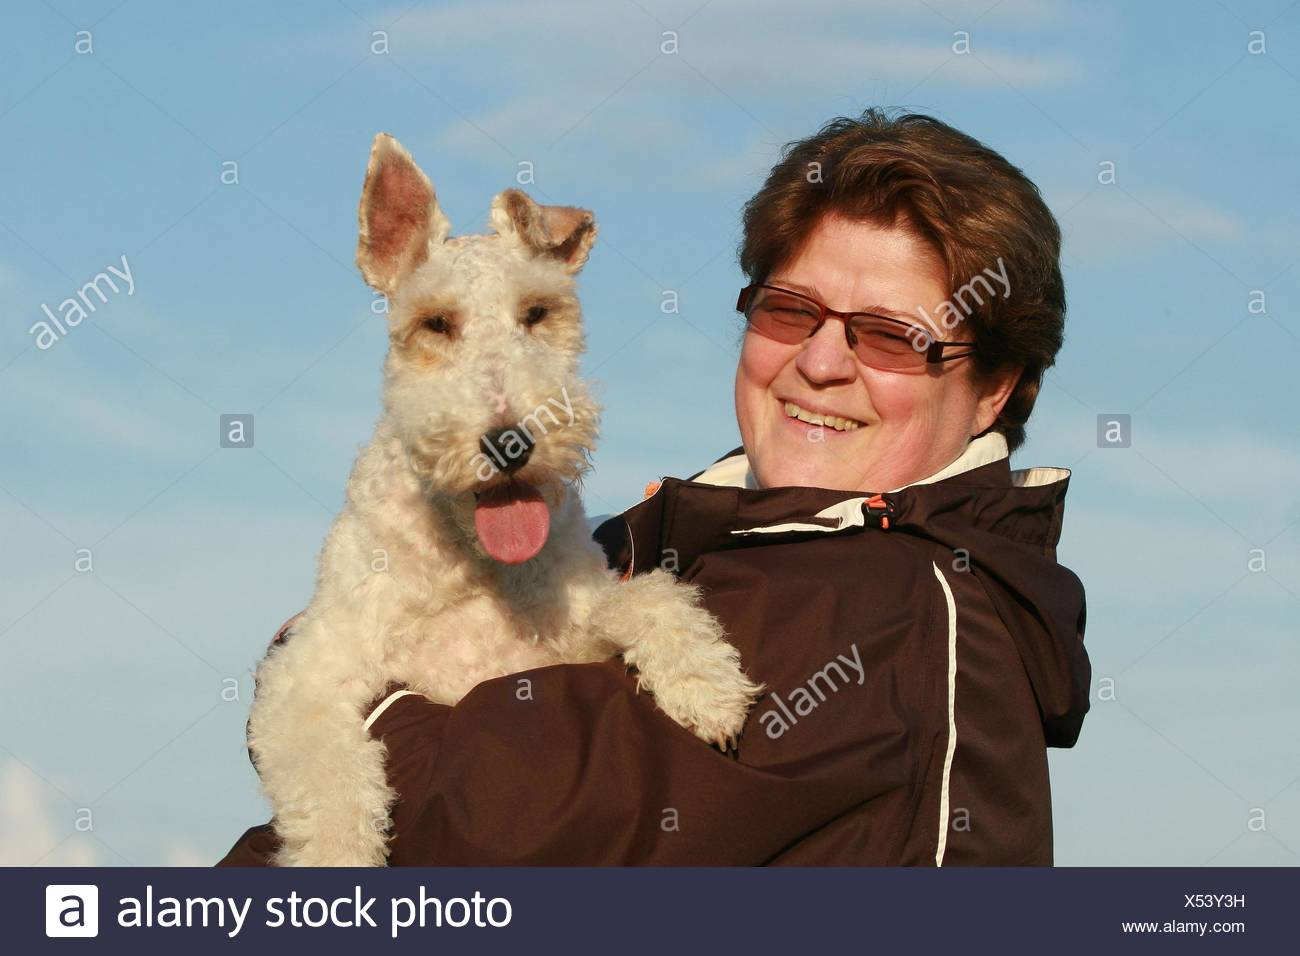 Pedigree Fox Terrier Stock Photos & Pedigree Fox Terrier Stock ...